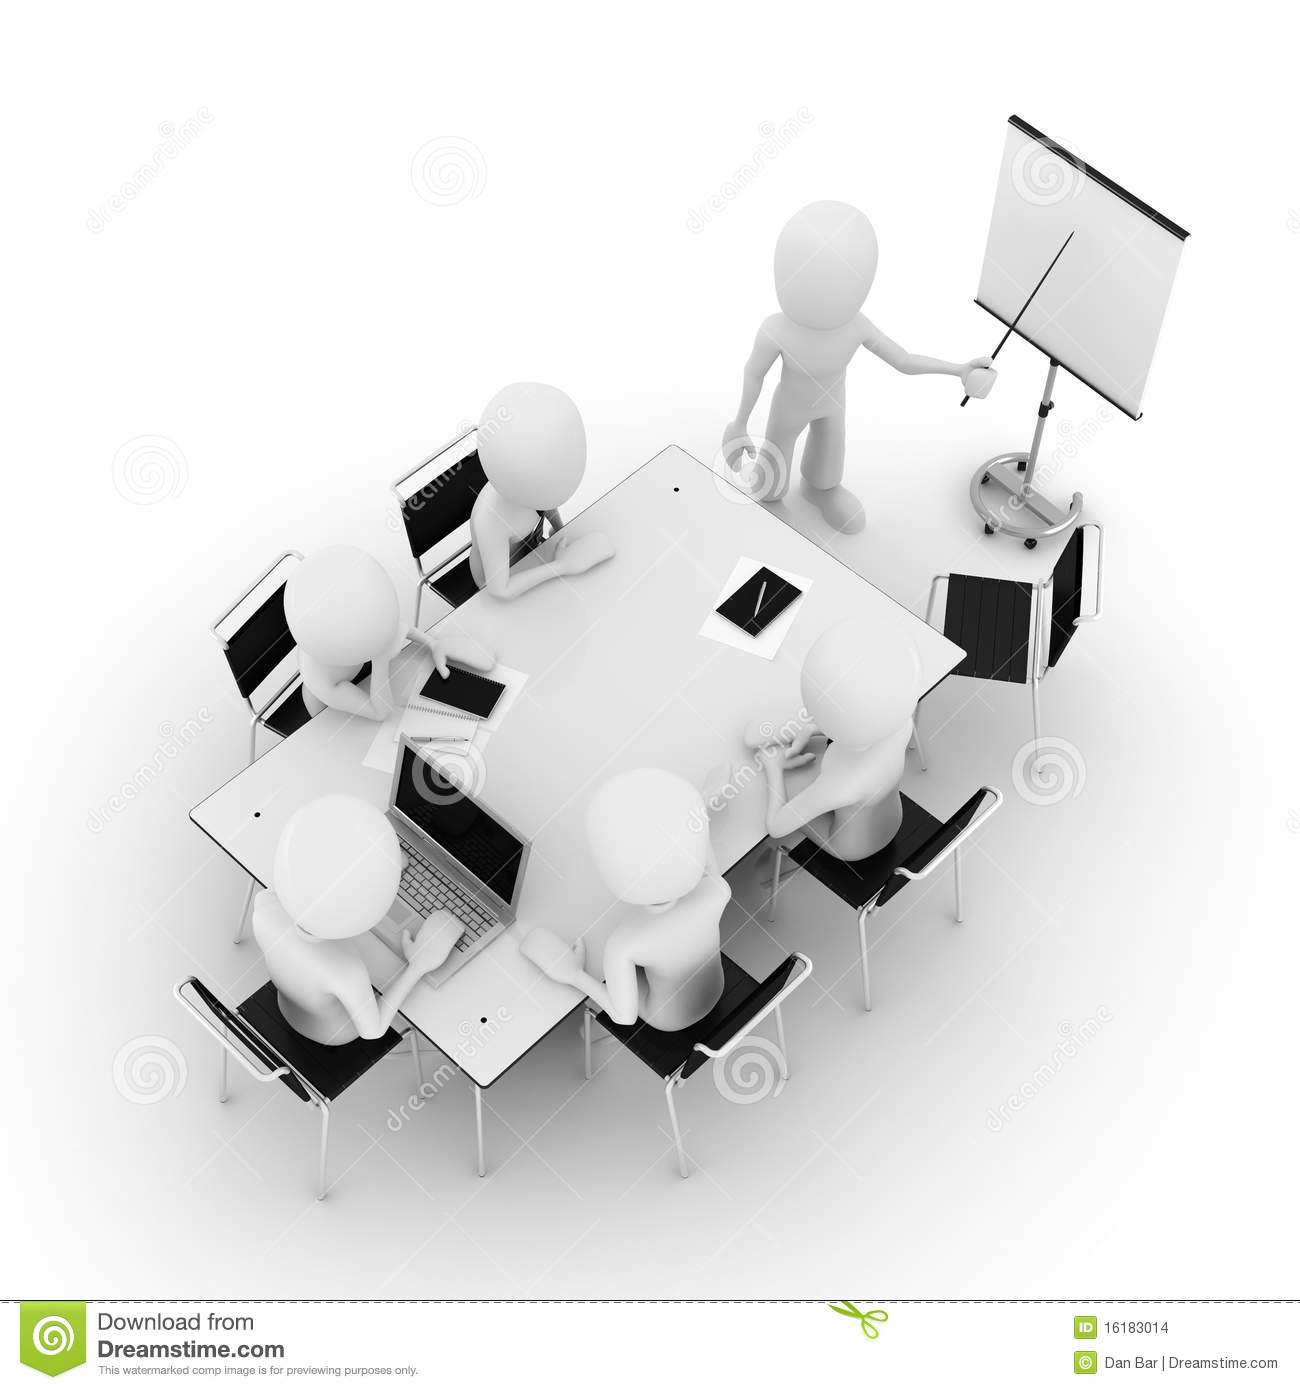 Stock Images 3d Man Business Meeting Isolated White Image16183014 on man alarm clock